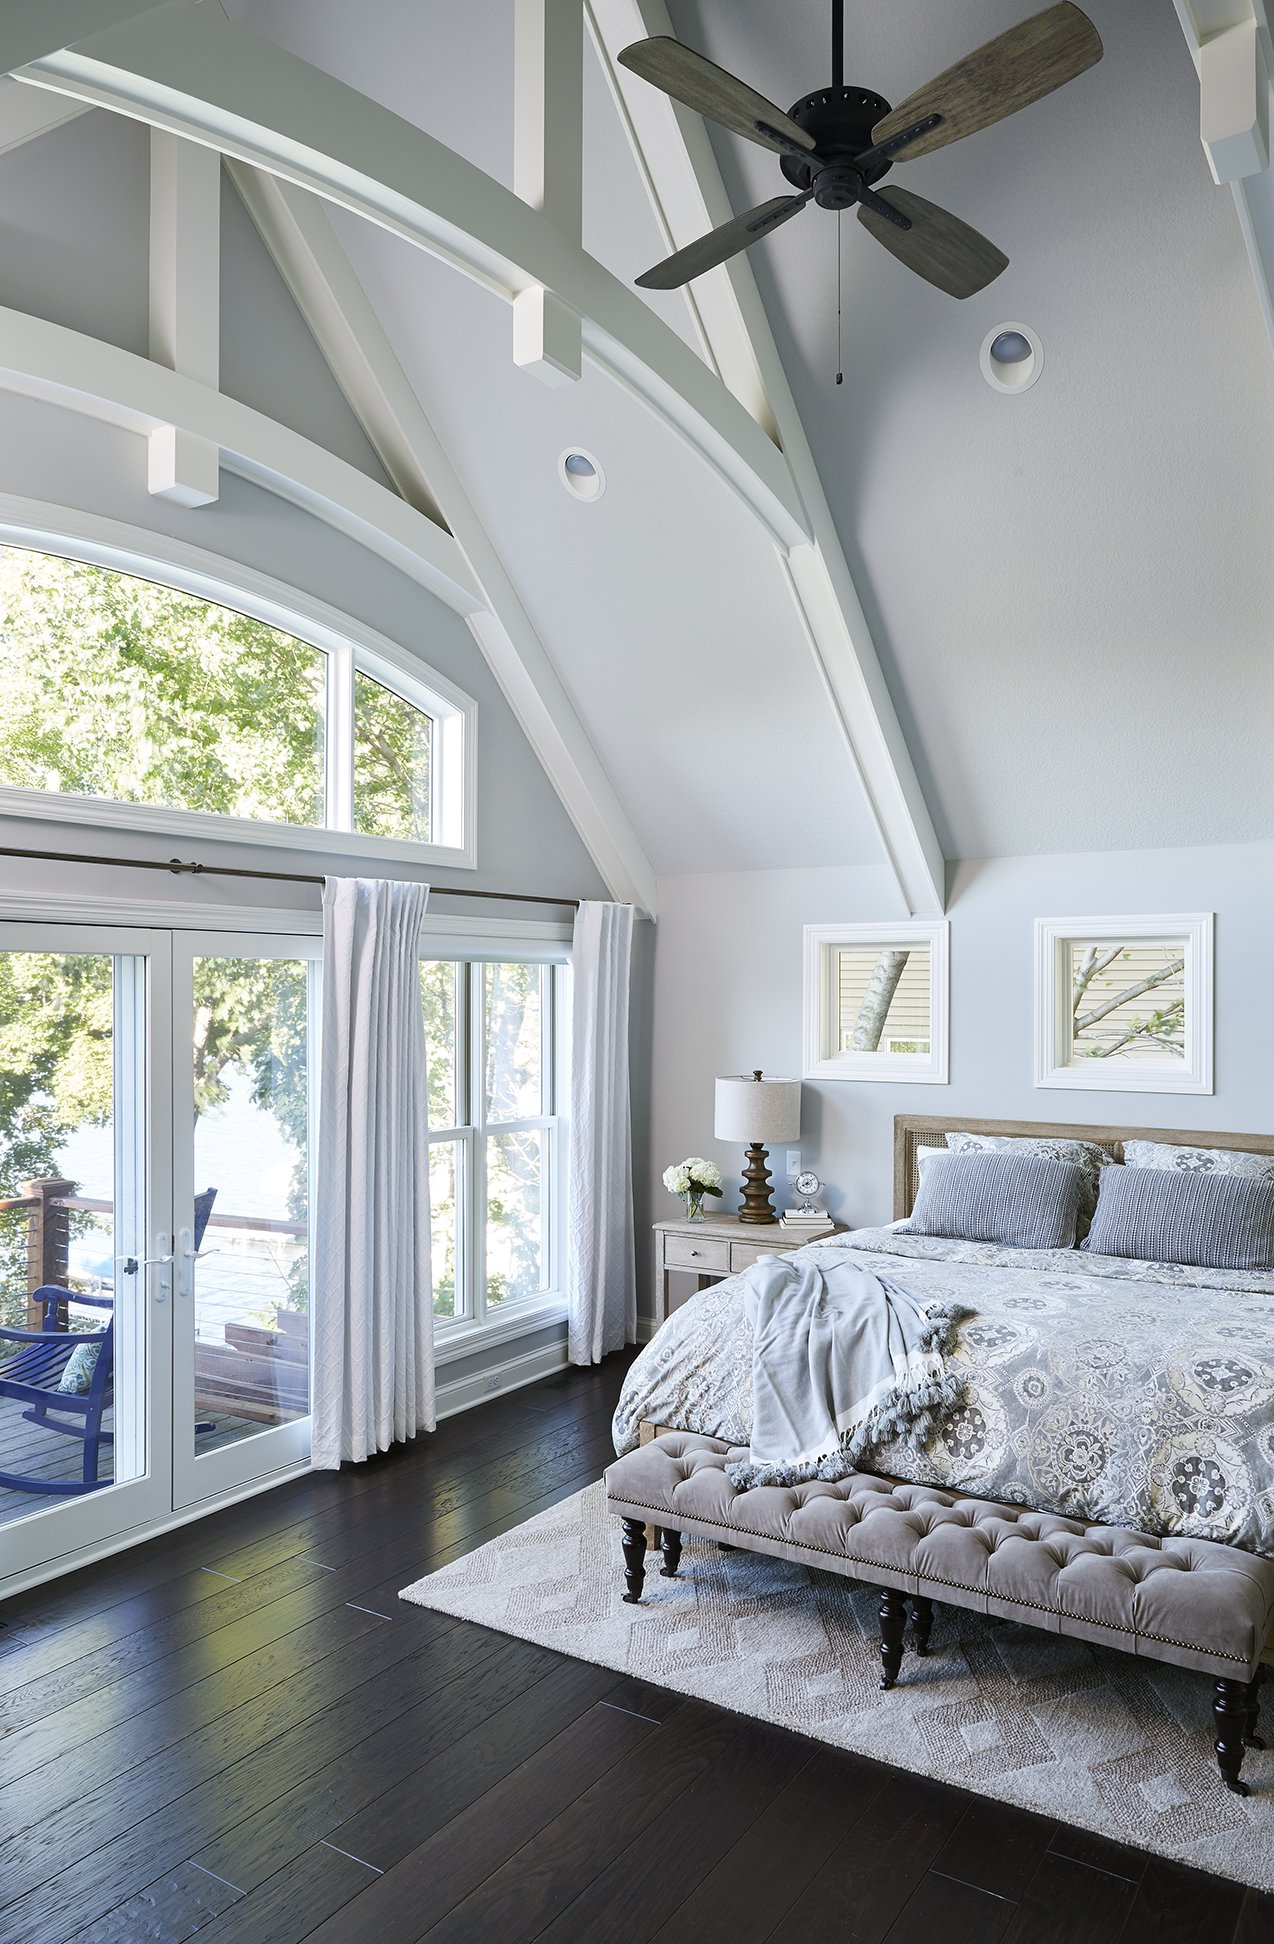 Floor-to-ceiling windows bring bright natural light into the space while ceiling beams add much-needed dimension and depth, accentuating the ceiling height and making this master bedroom the perfect place to relax.